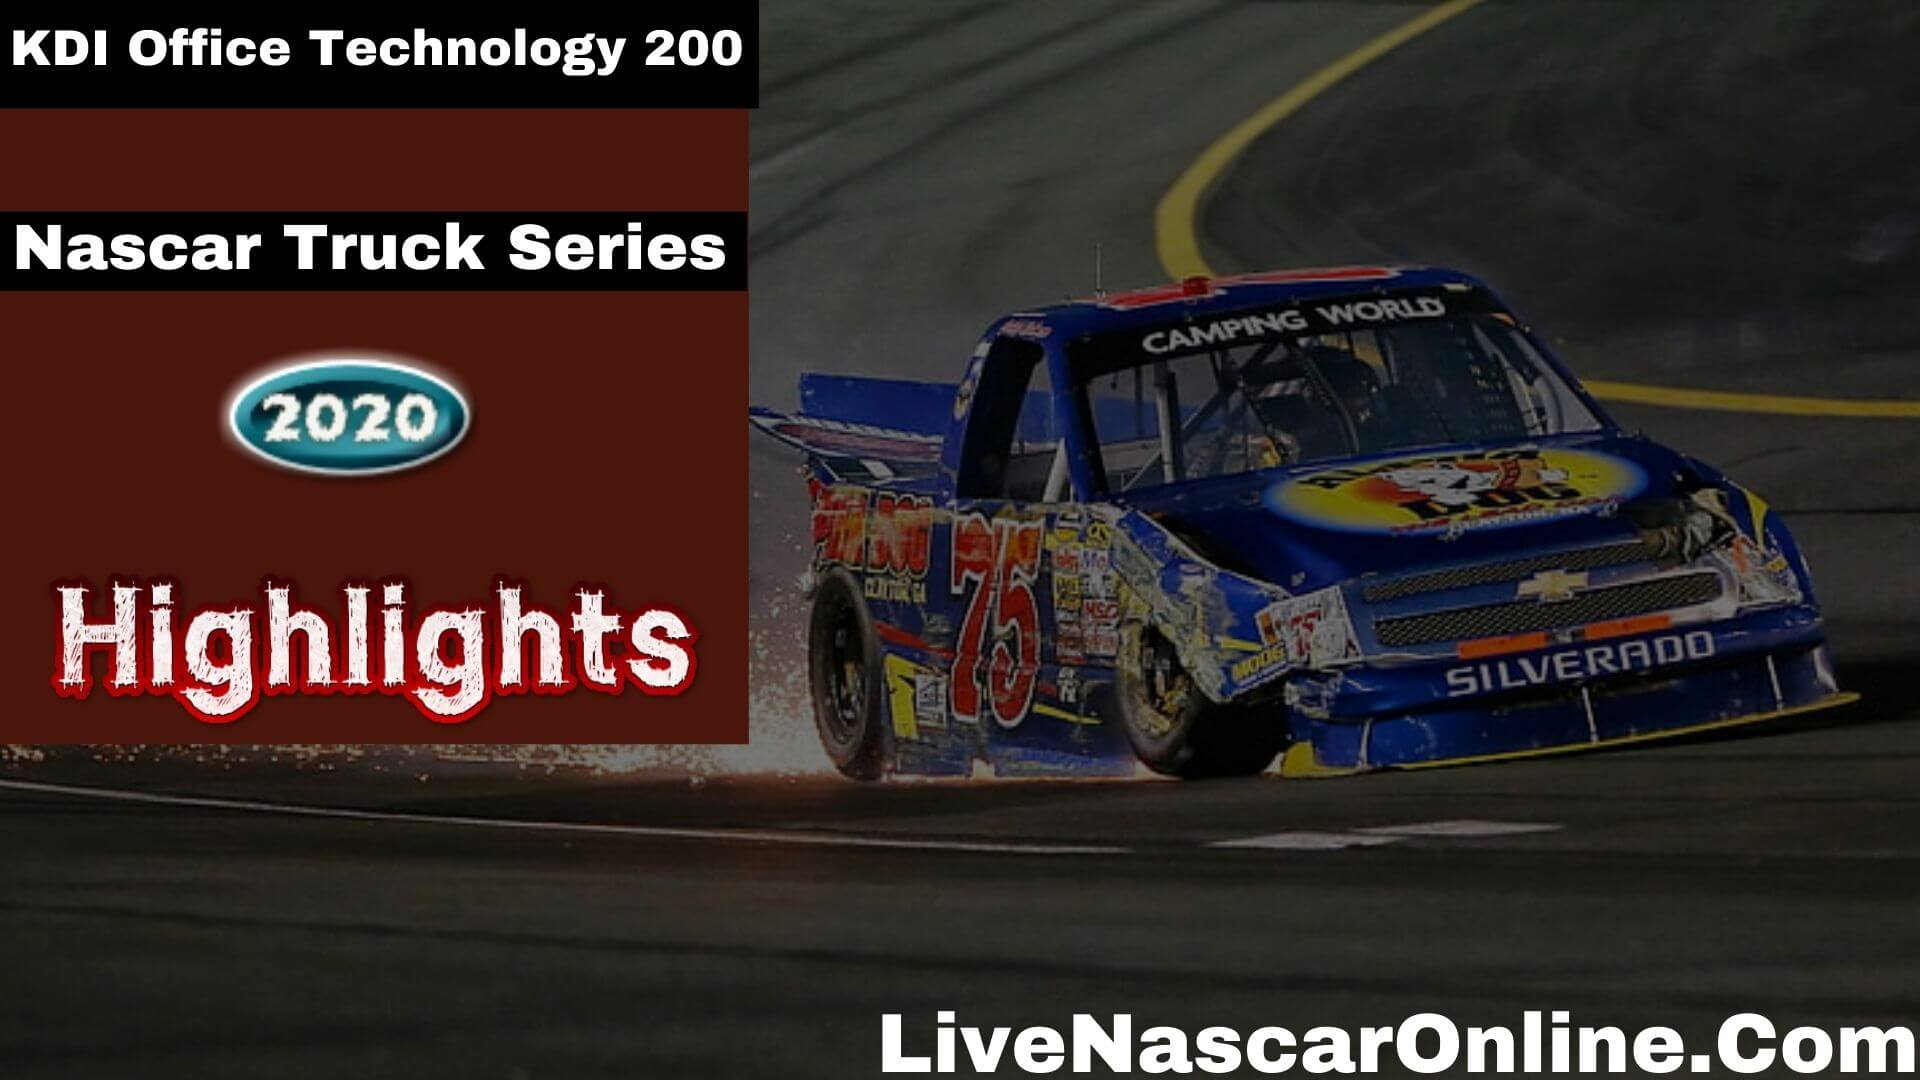 KDI Office Technology 200 Truck Series Highlights 2020